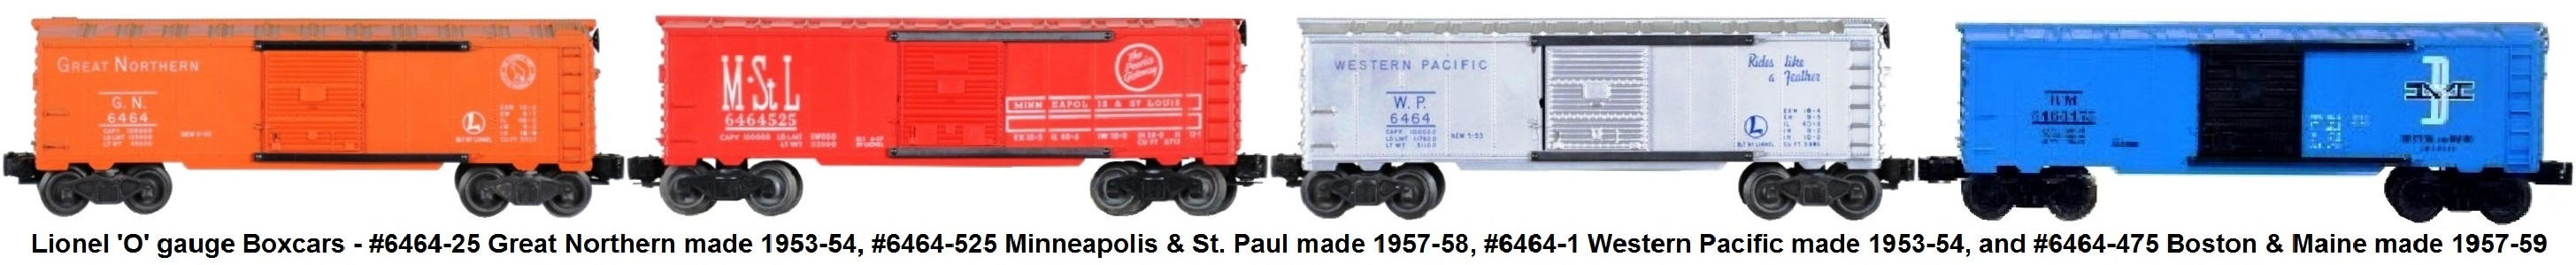 Lionel 6464 series box cars from the post-war era - #6464-25 GN, type I, #6464-525 M&StL type IIB, #6464-1 WP type I, #6464-475 Boston & Maine